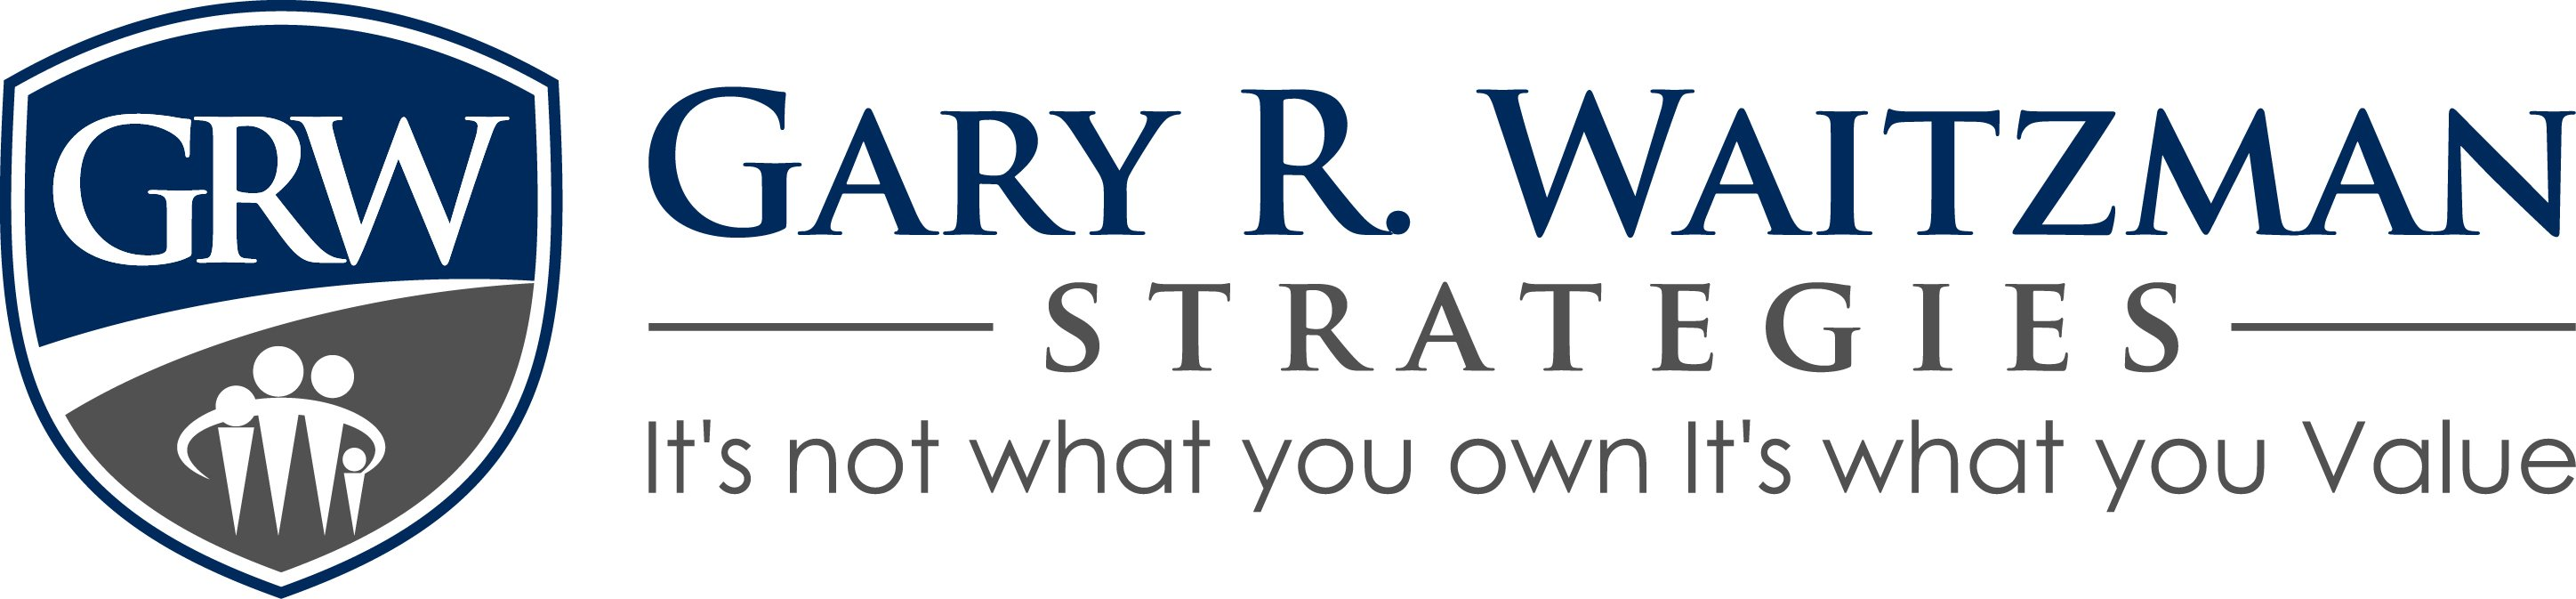 Gary R. Waitzman Strategies